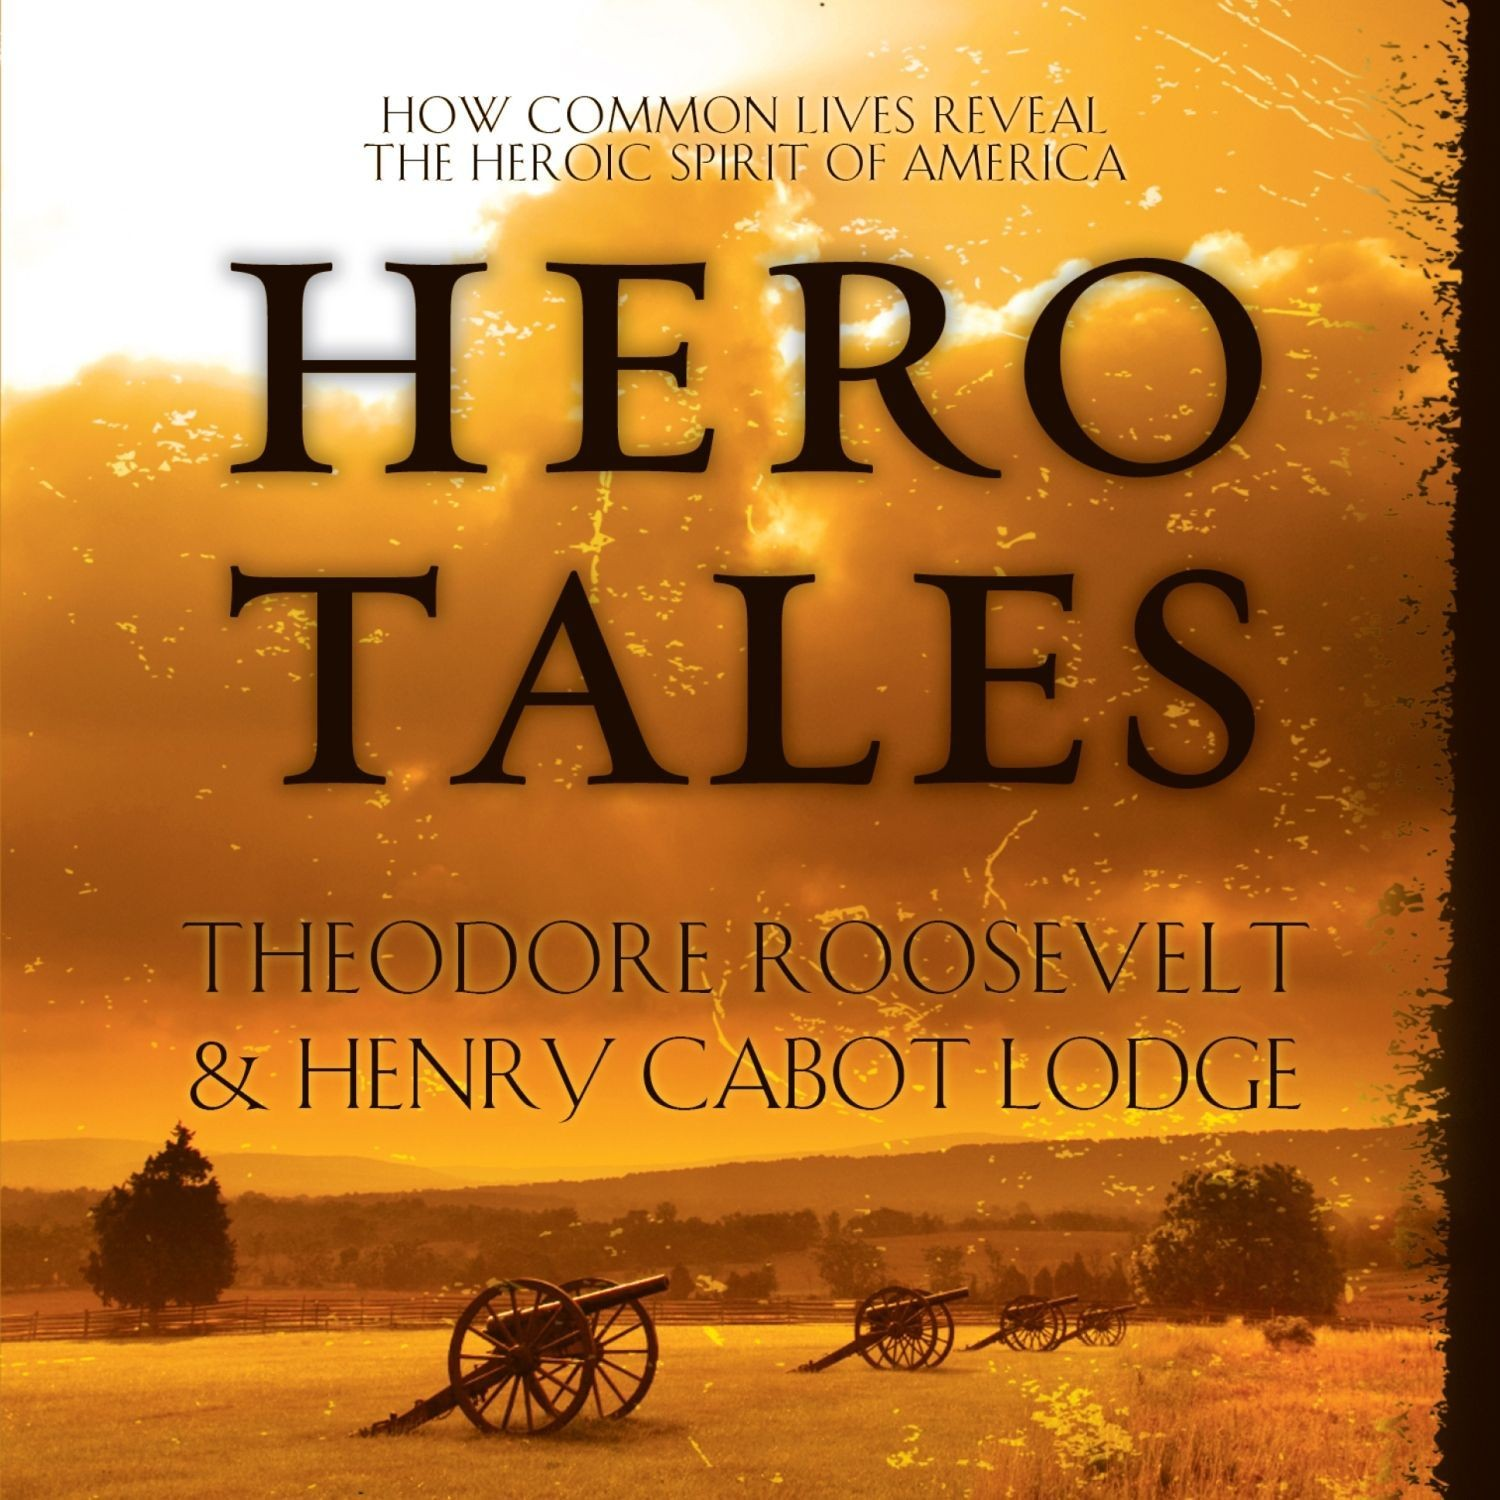 Printable Hero Tales: How Common Lives Reveal the Uncommon Genius of America Audiobook Cover Art